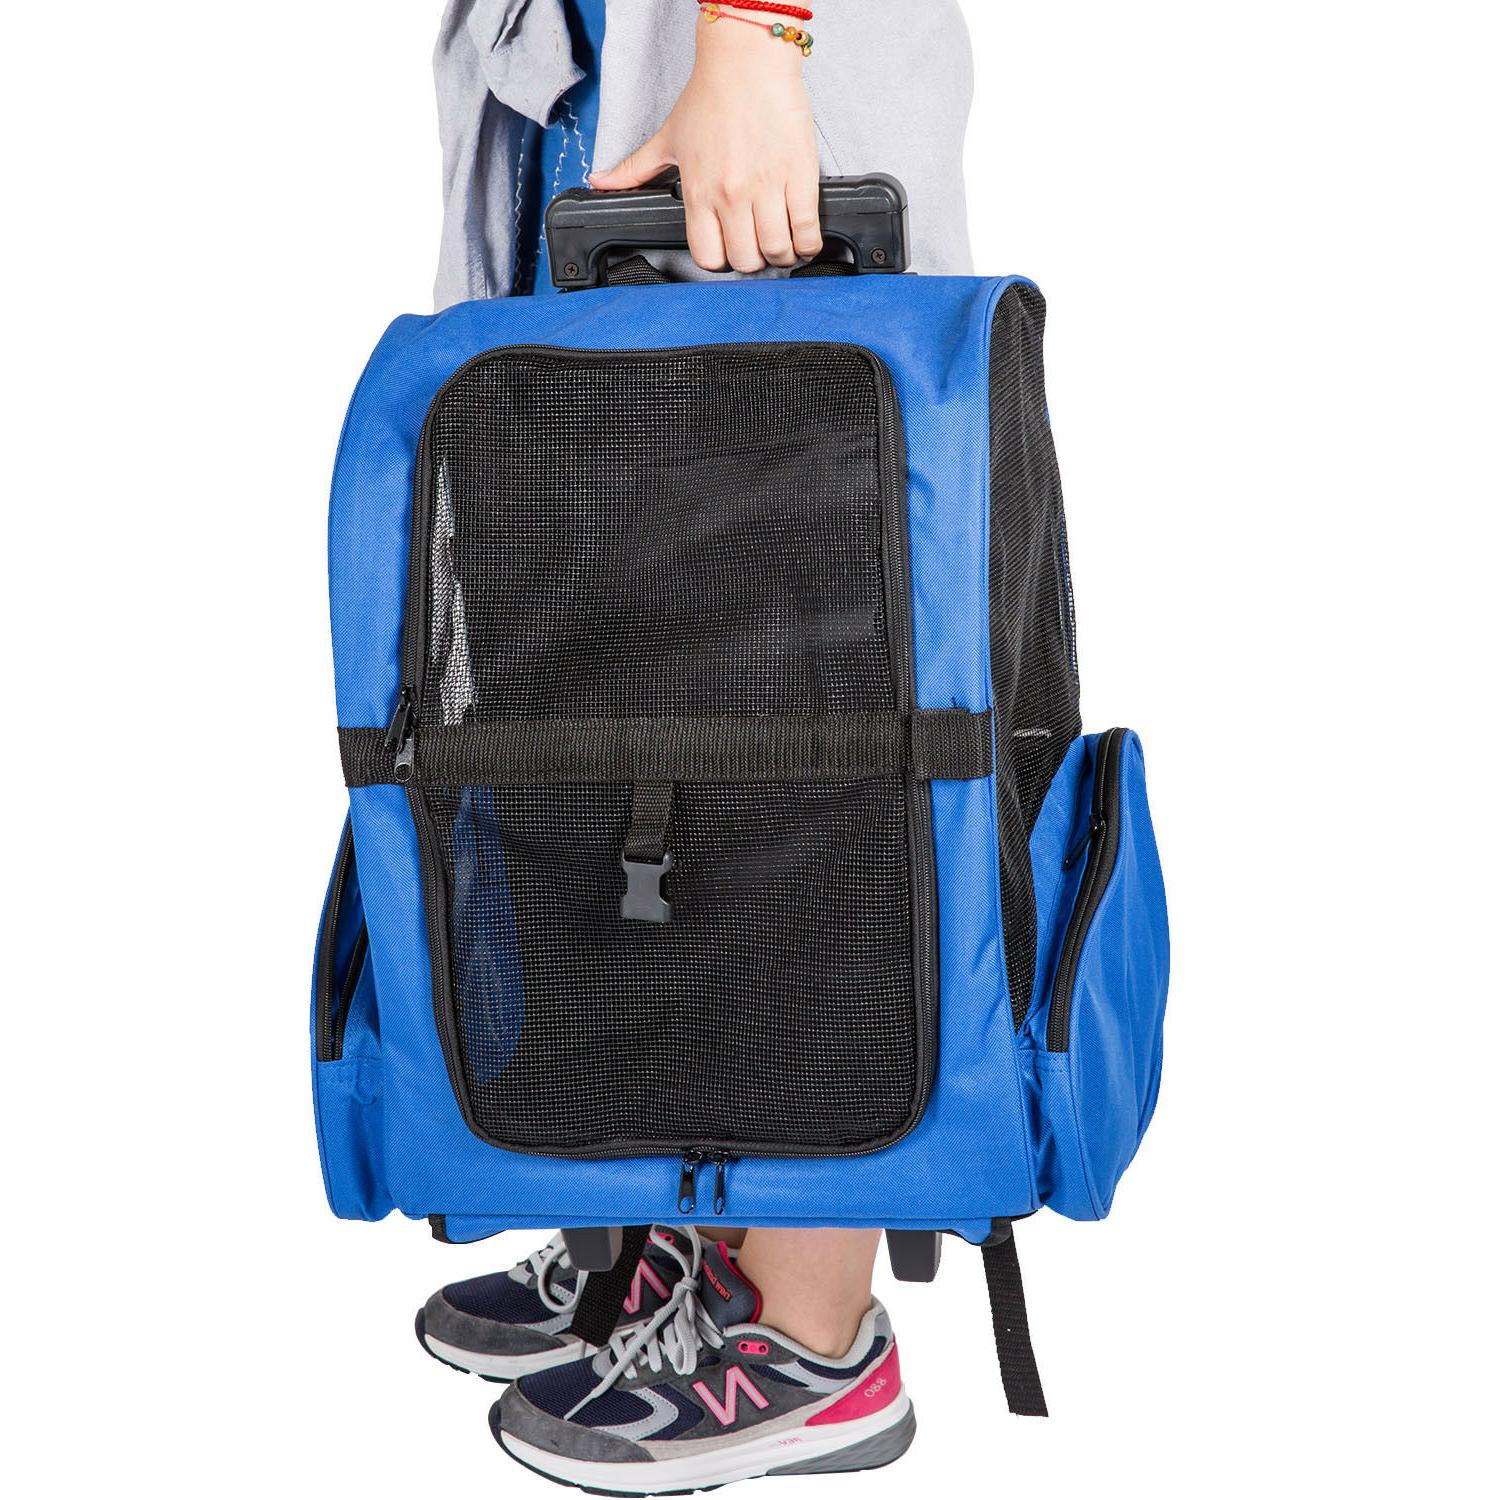 Rolling BackPack Luggage pproved